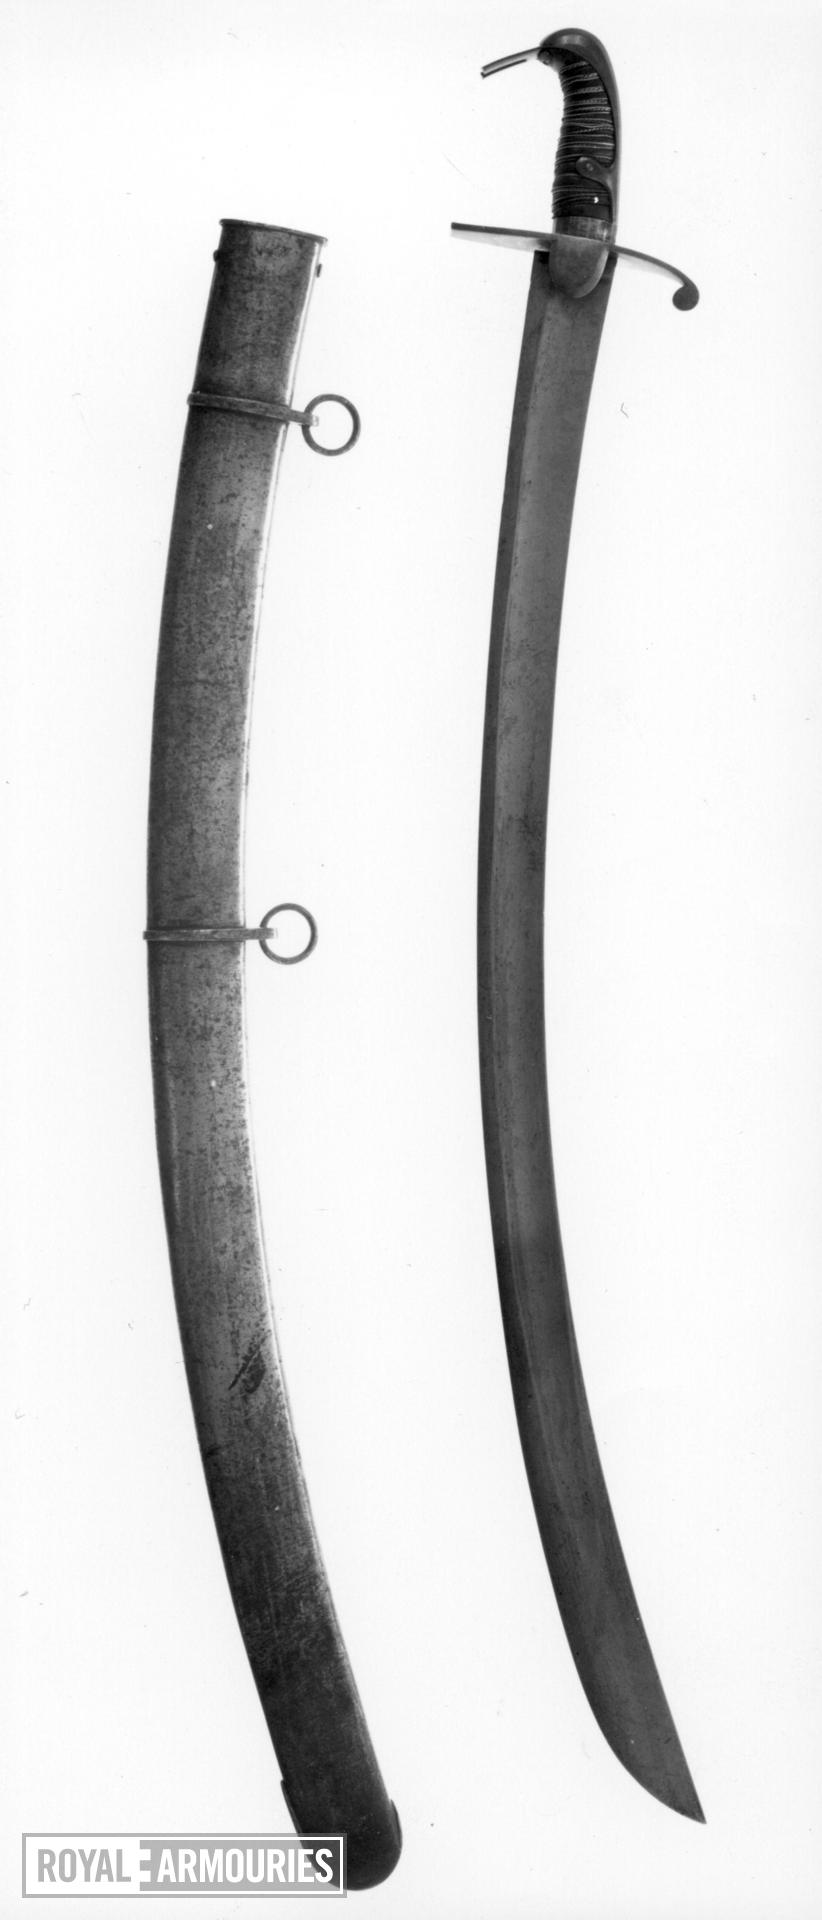 Sword and scabbard Light Cavalry Officer's sword and scabbard, Pattern 1796, by Osborn & Gunby.